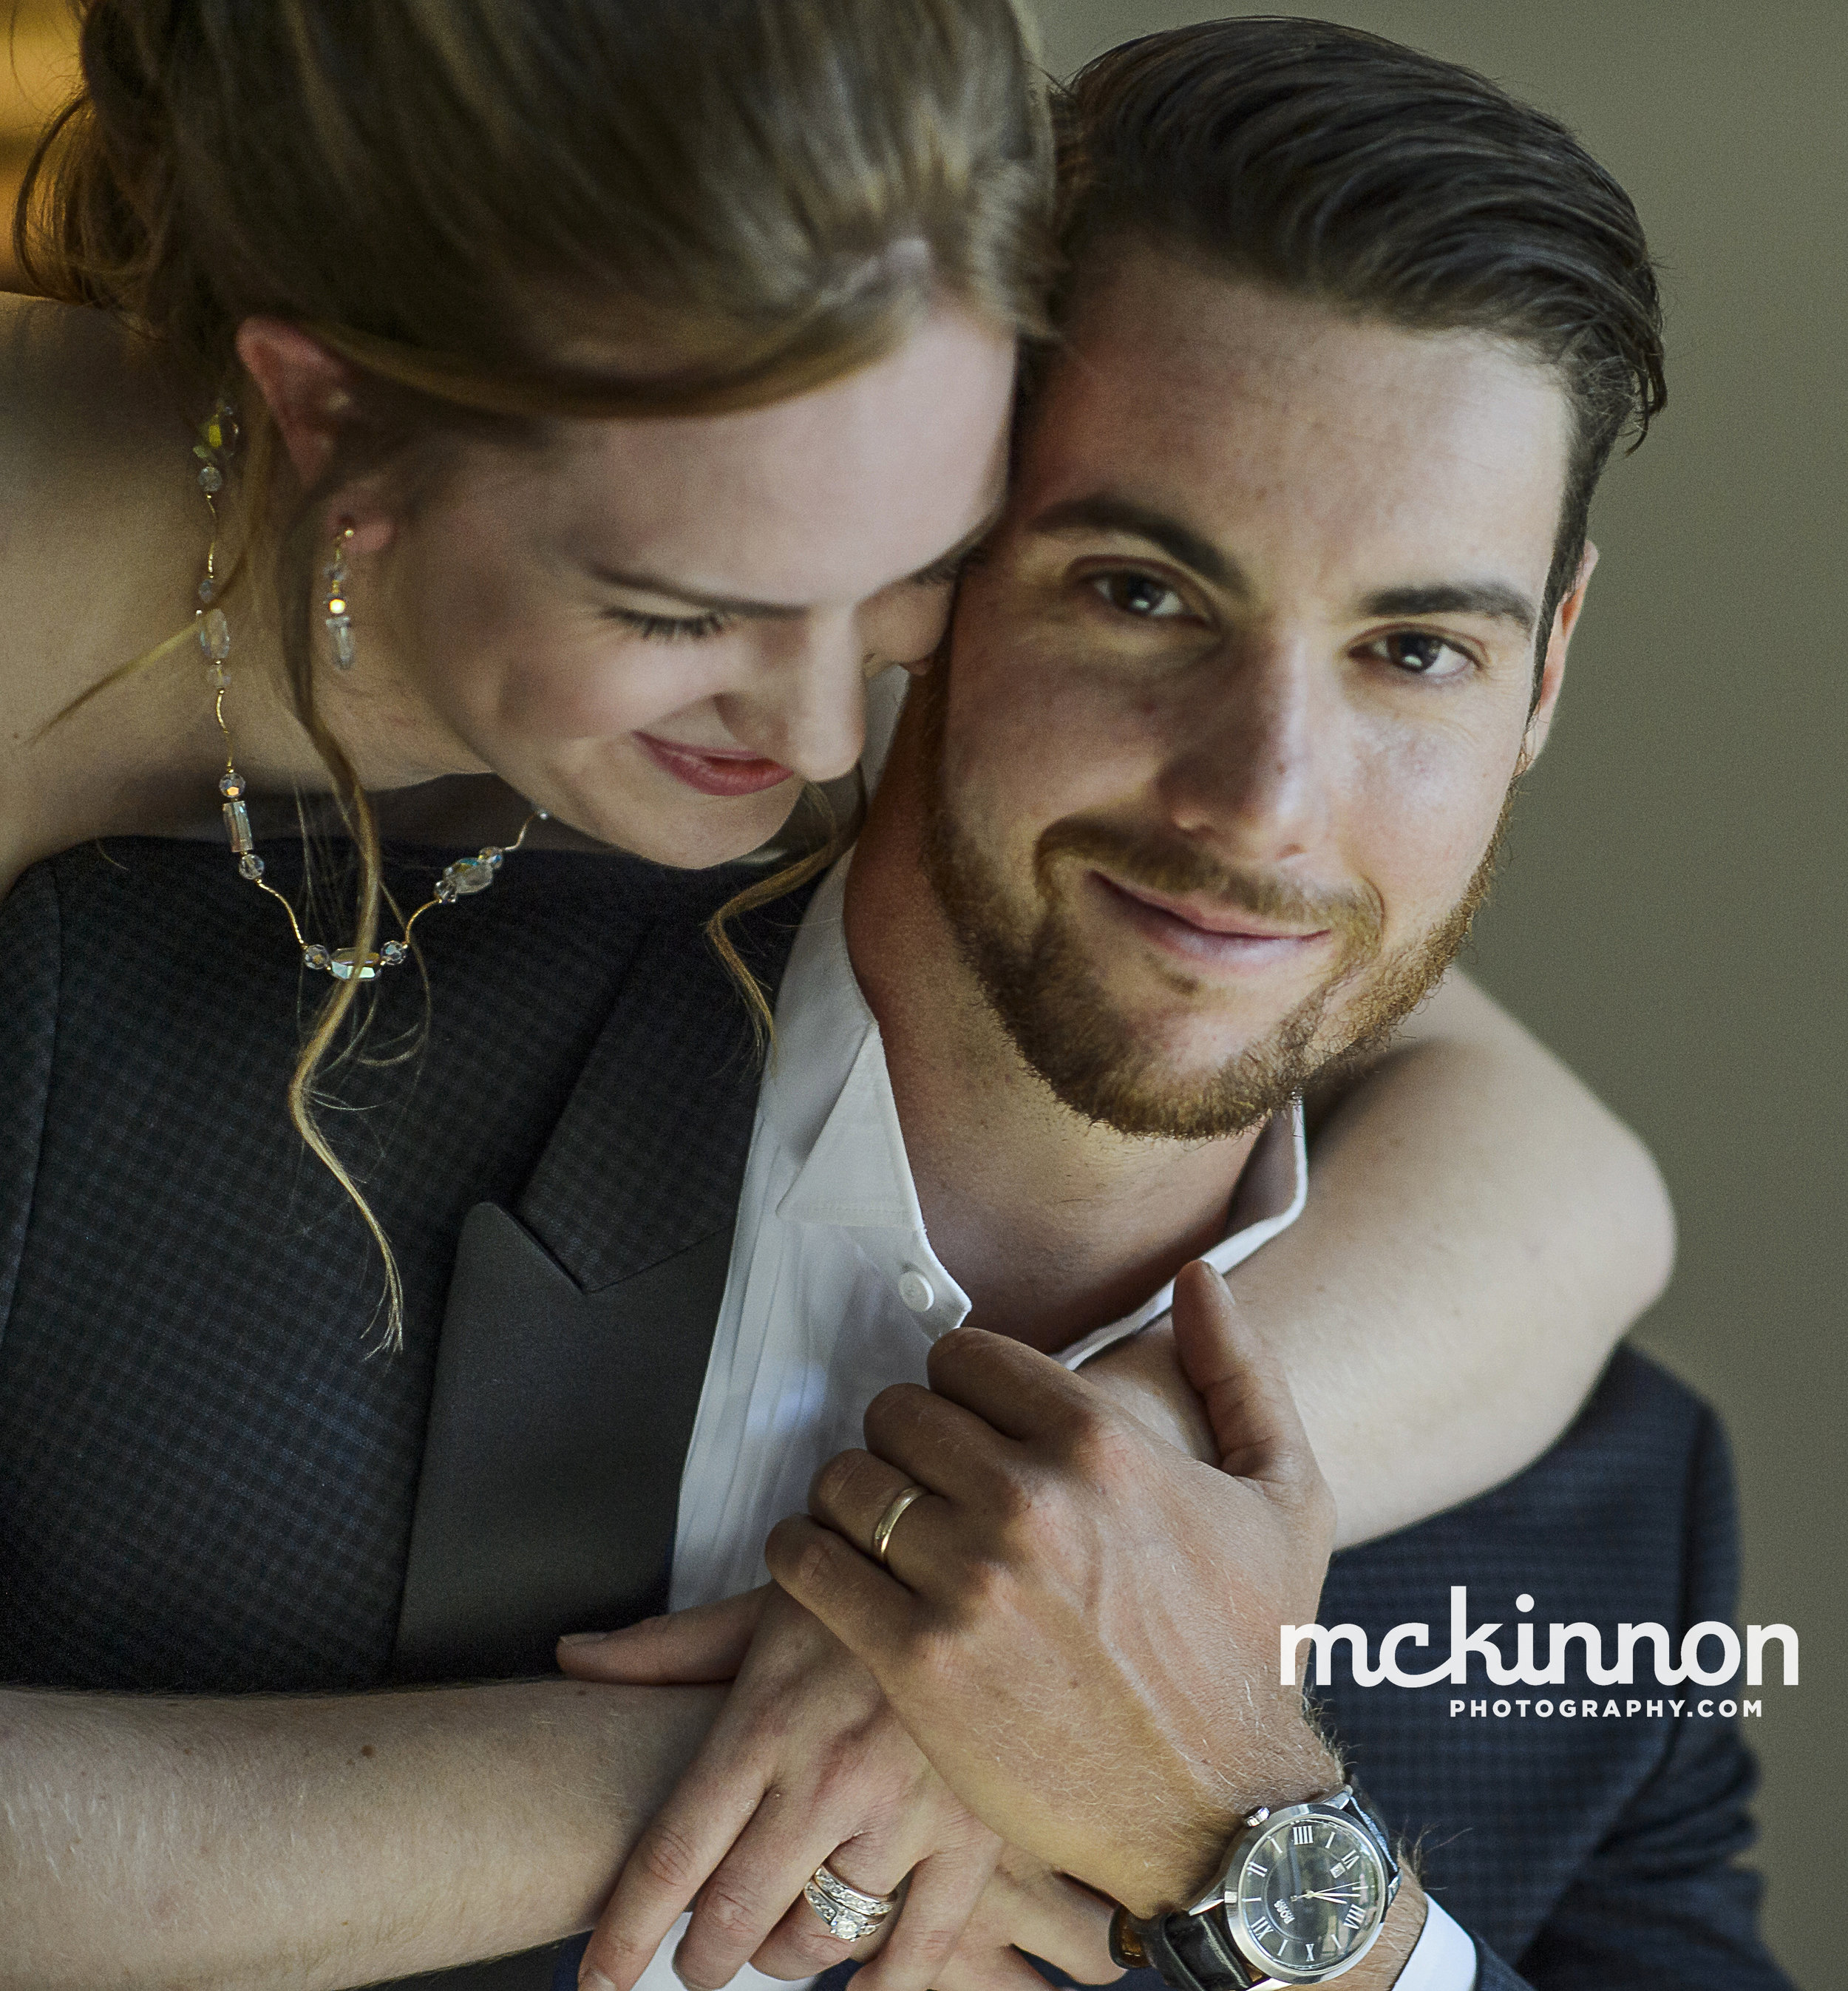 Mckinnion Photography / Design by Chanel Skea  Vancouver Island wedding planning